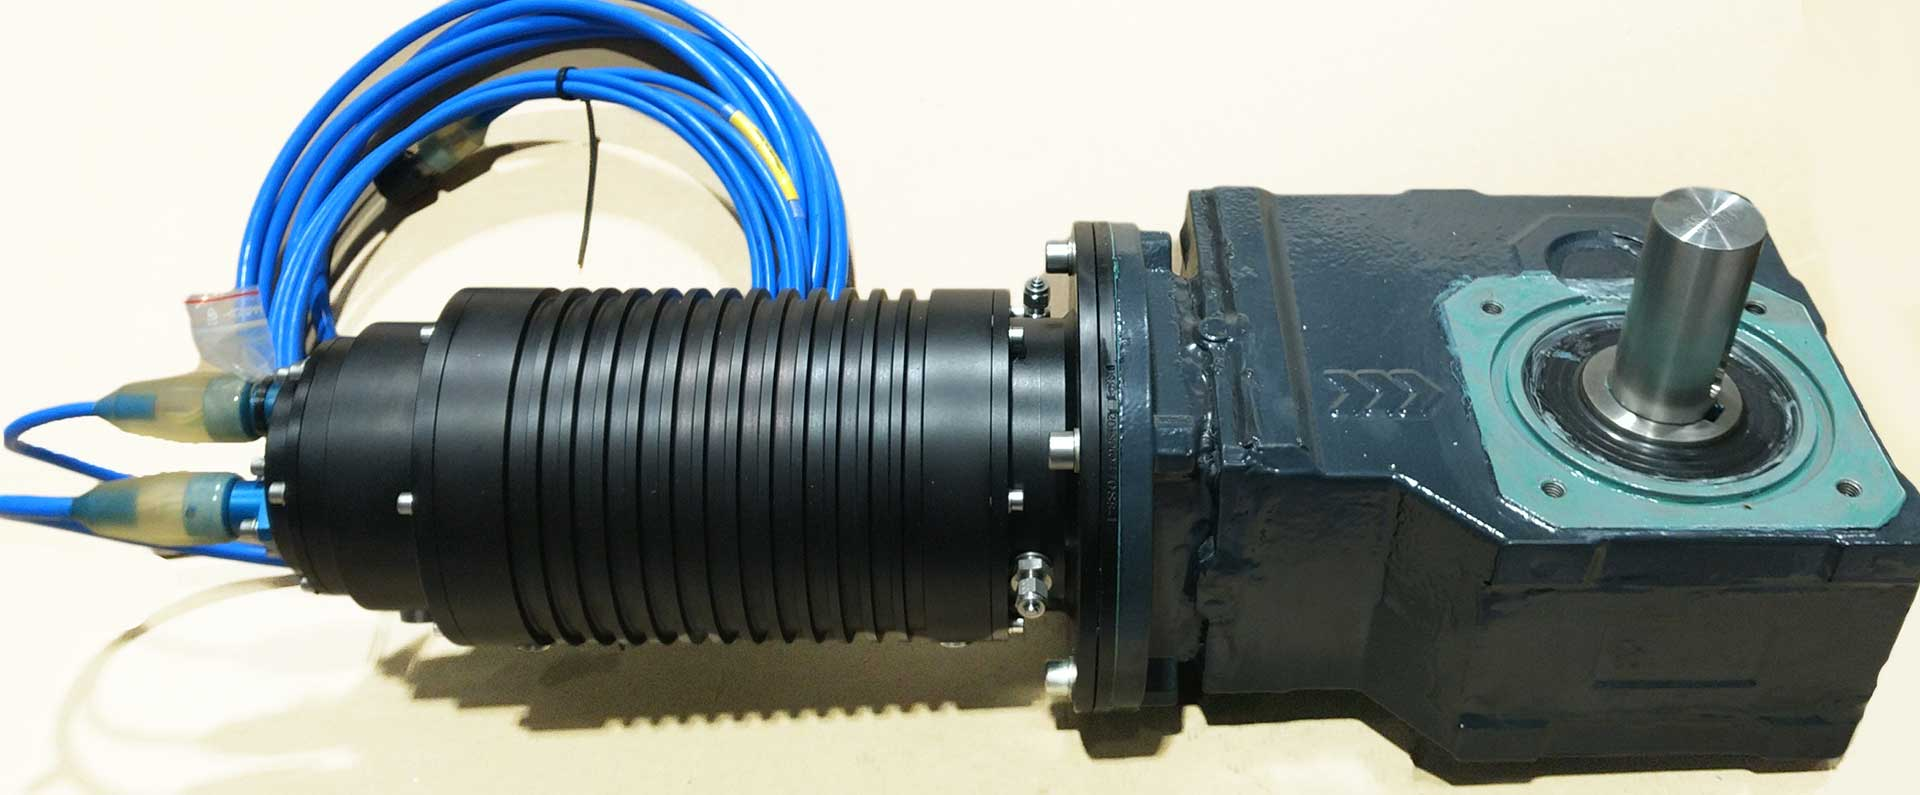 Electro motor and gear system designed for subsea use.